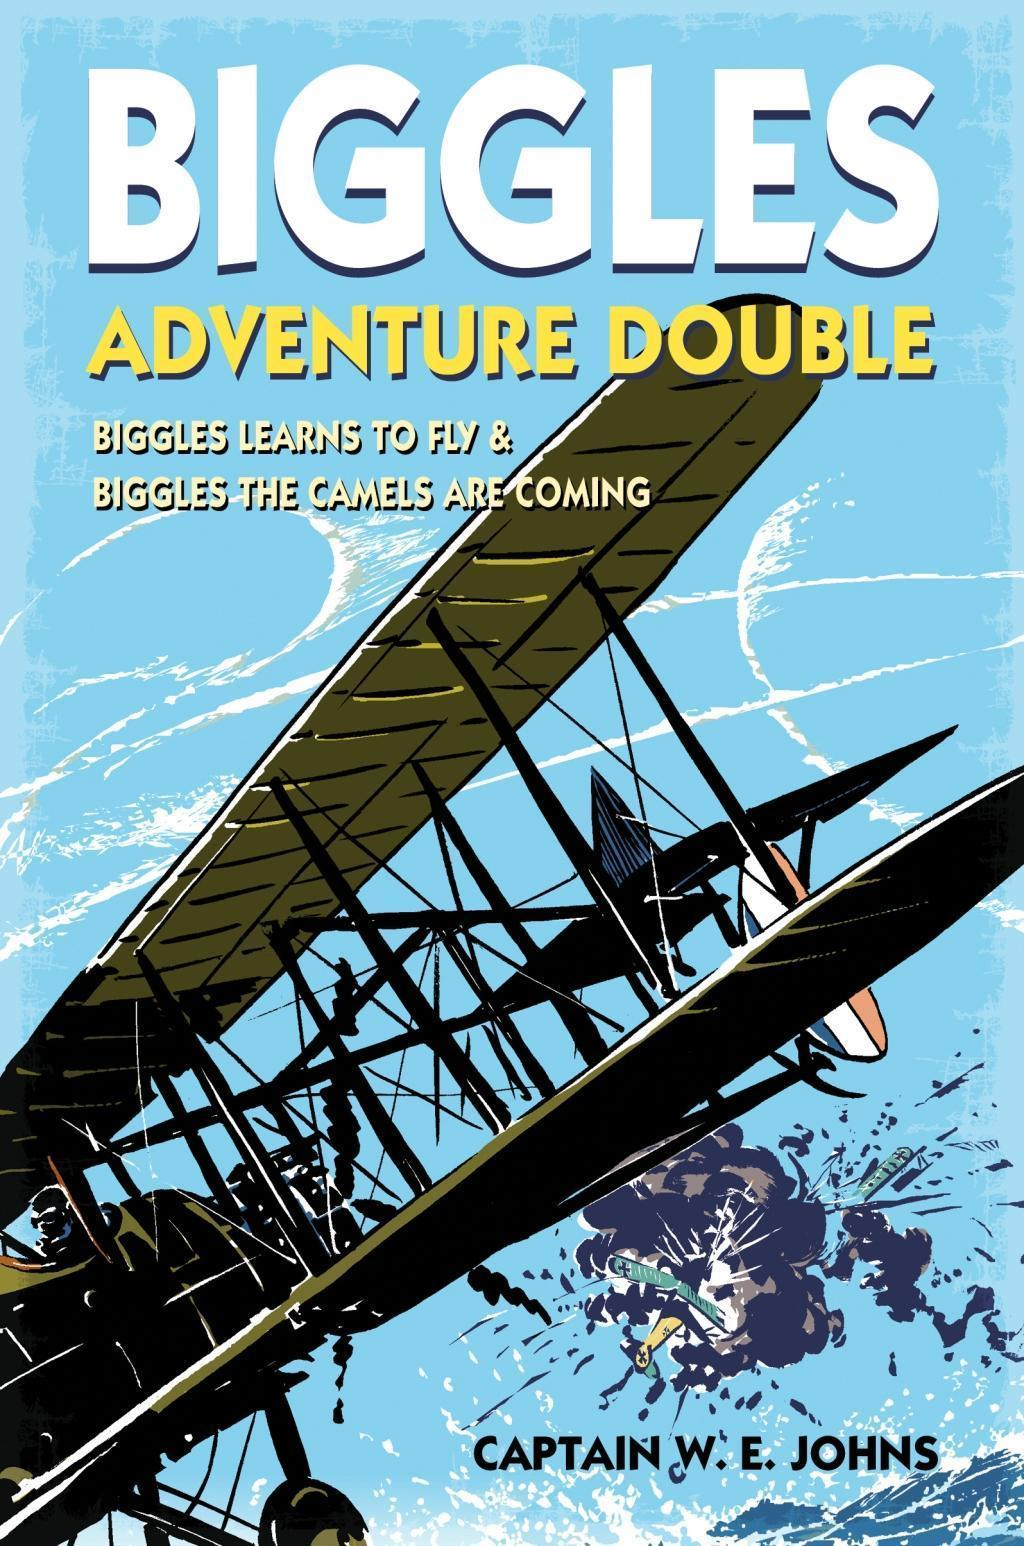 Biggles Adventure Double: Biggles Learns to Fly & Biggles the Camels are Coming